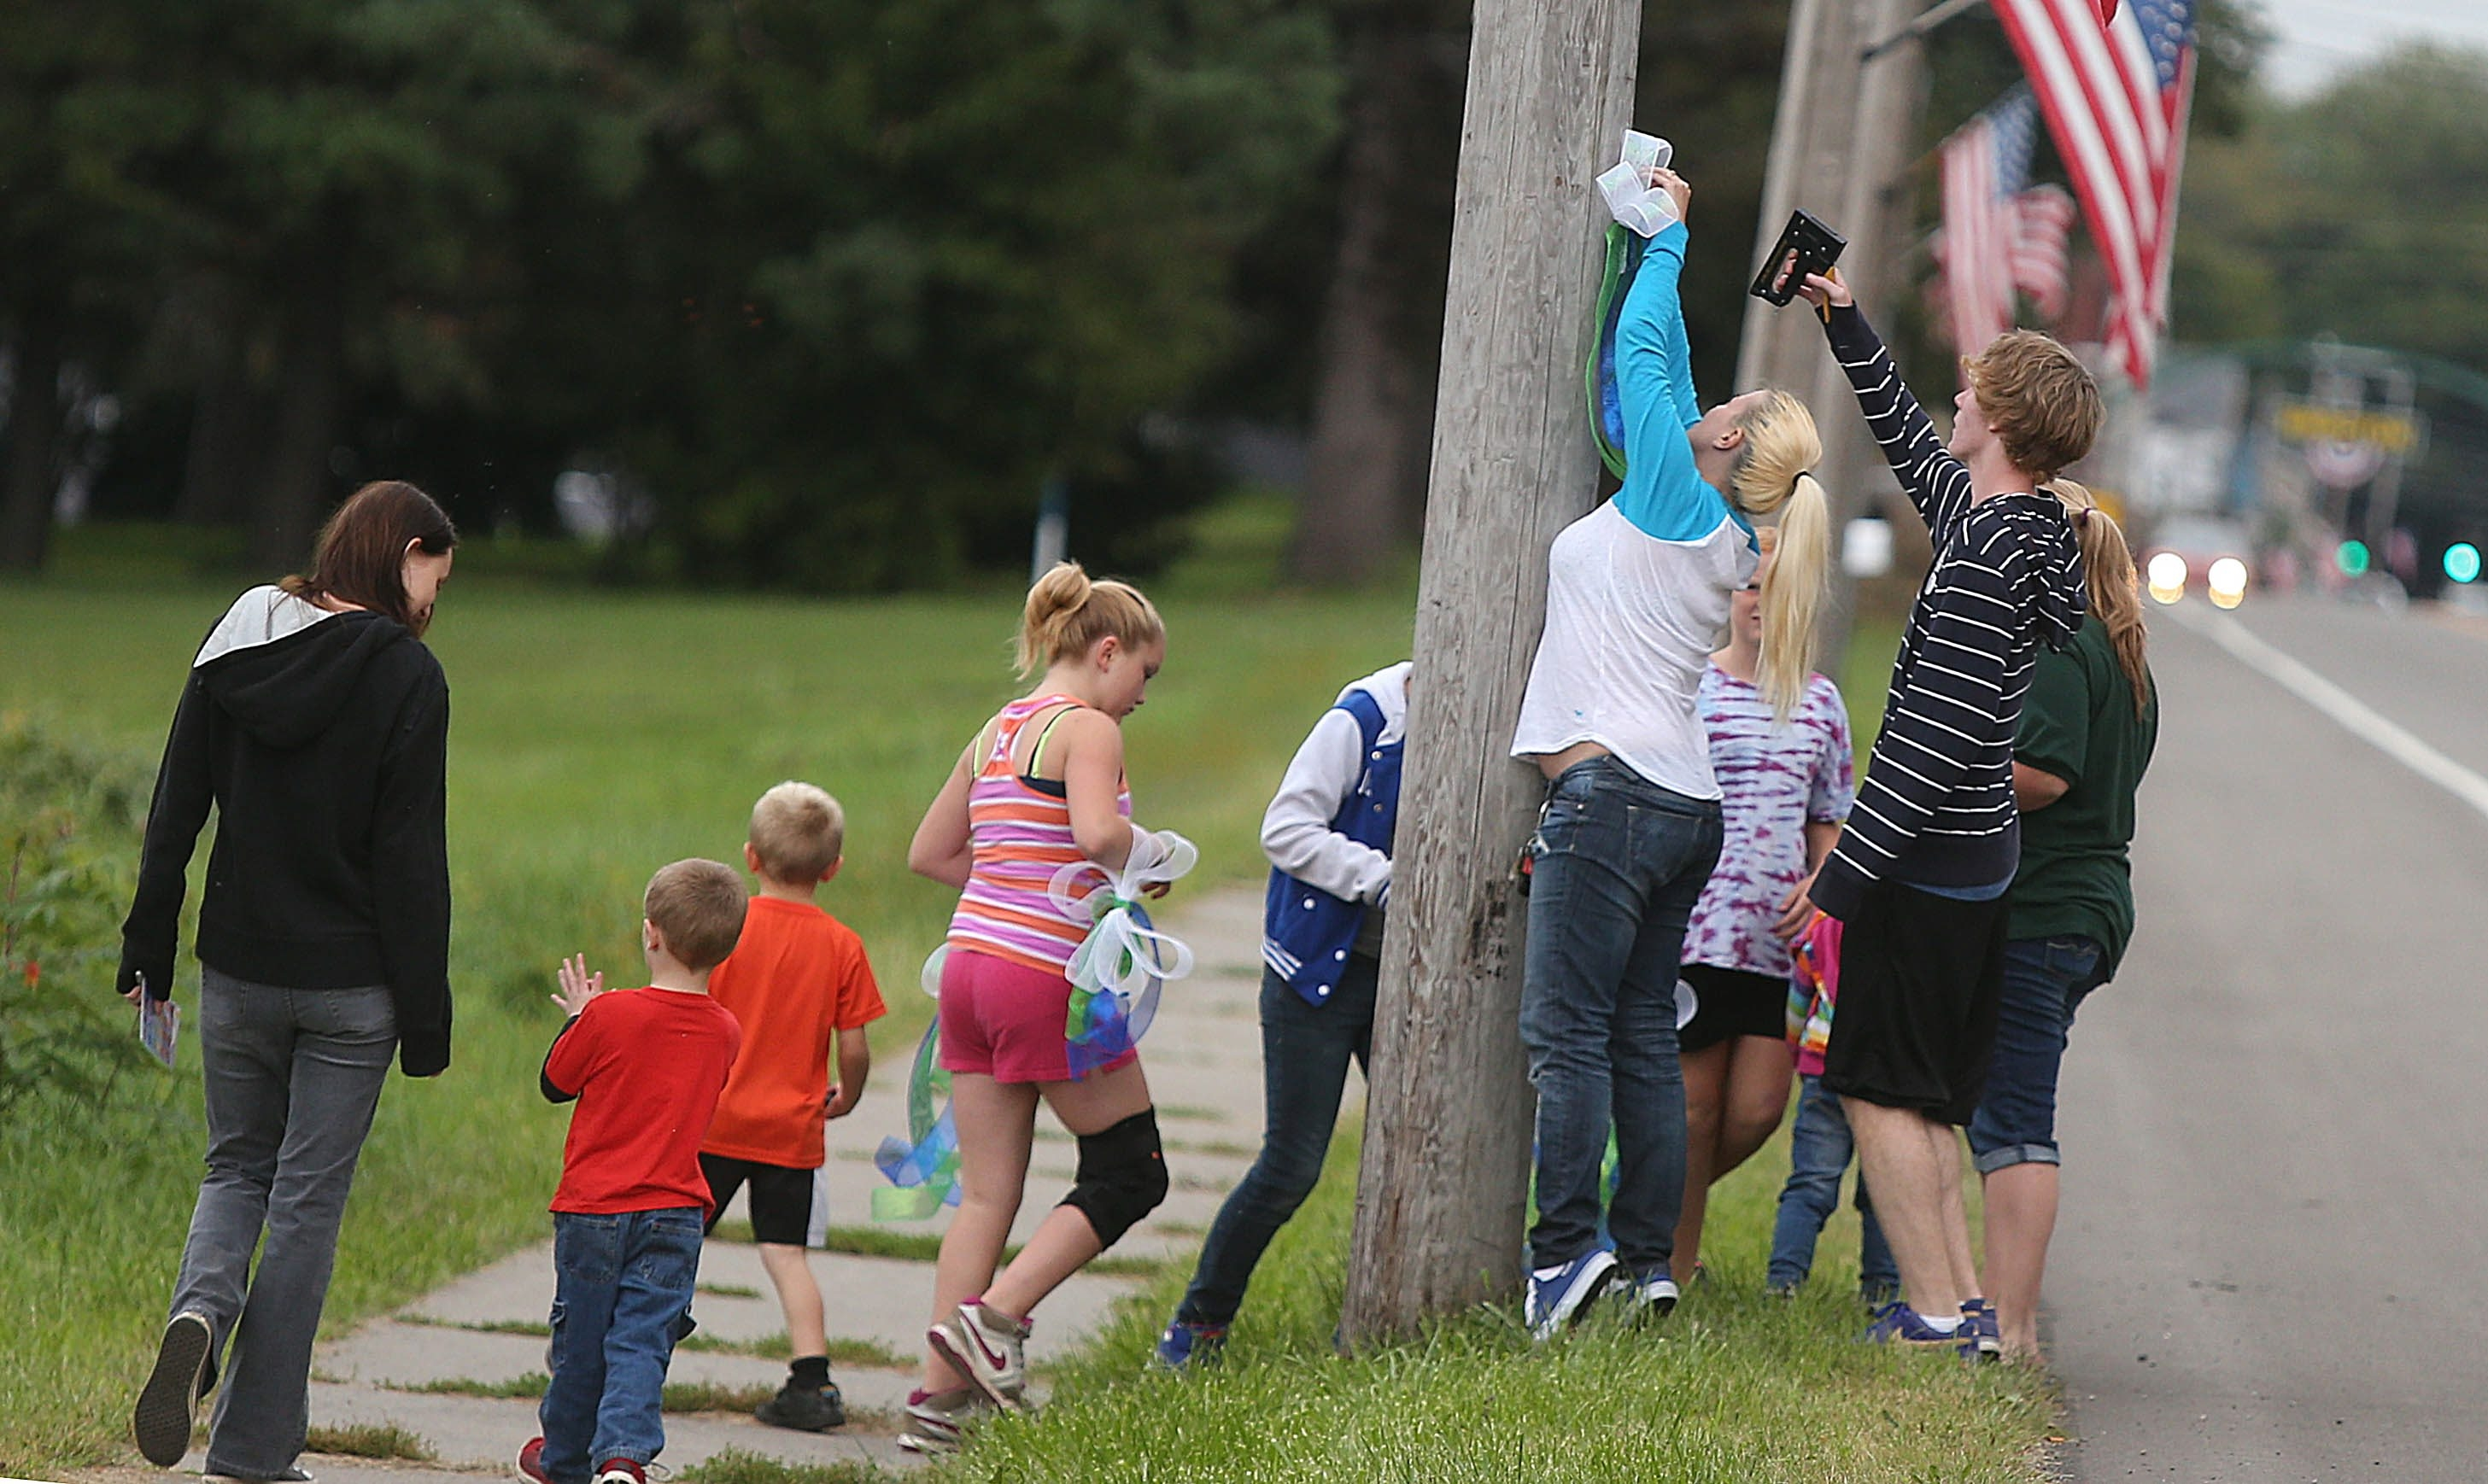 Family and friends staple ribbons to utility poles along Route 20 in the Village of Brocton in honor of Damon W. Janes on Sunday. The football player remains in critical condition in Women & Children's Hospital after being injured Friday.